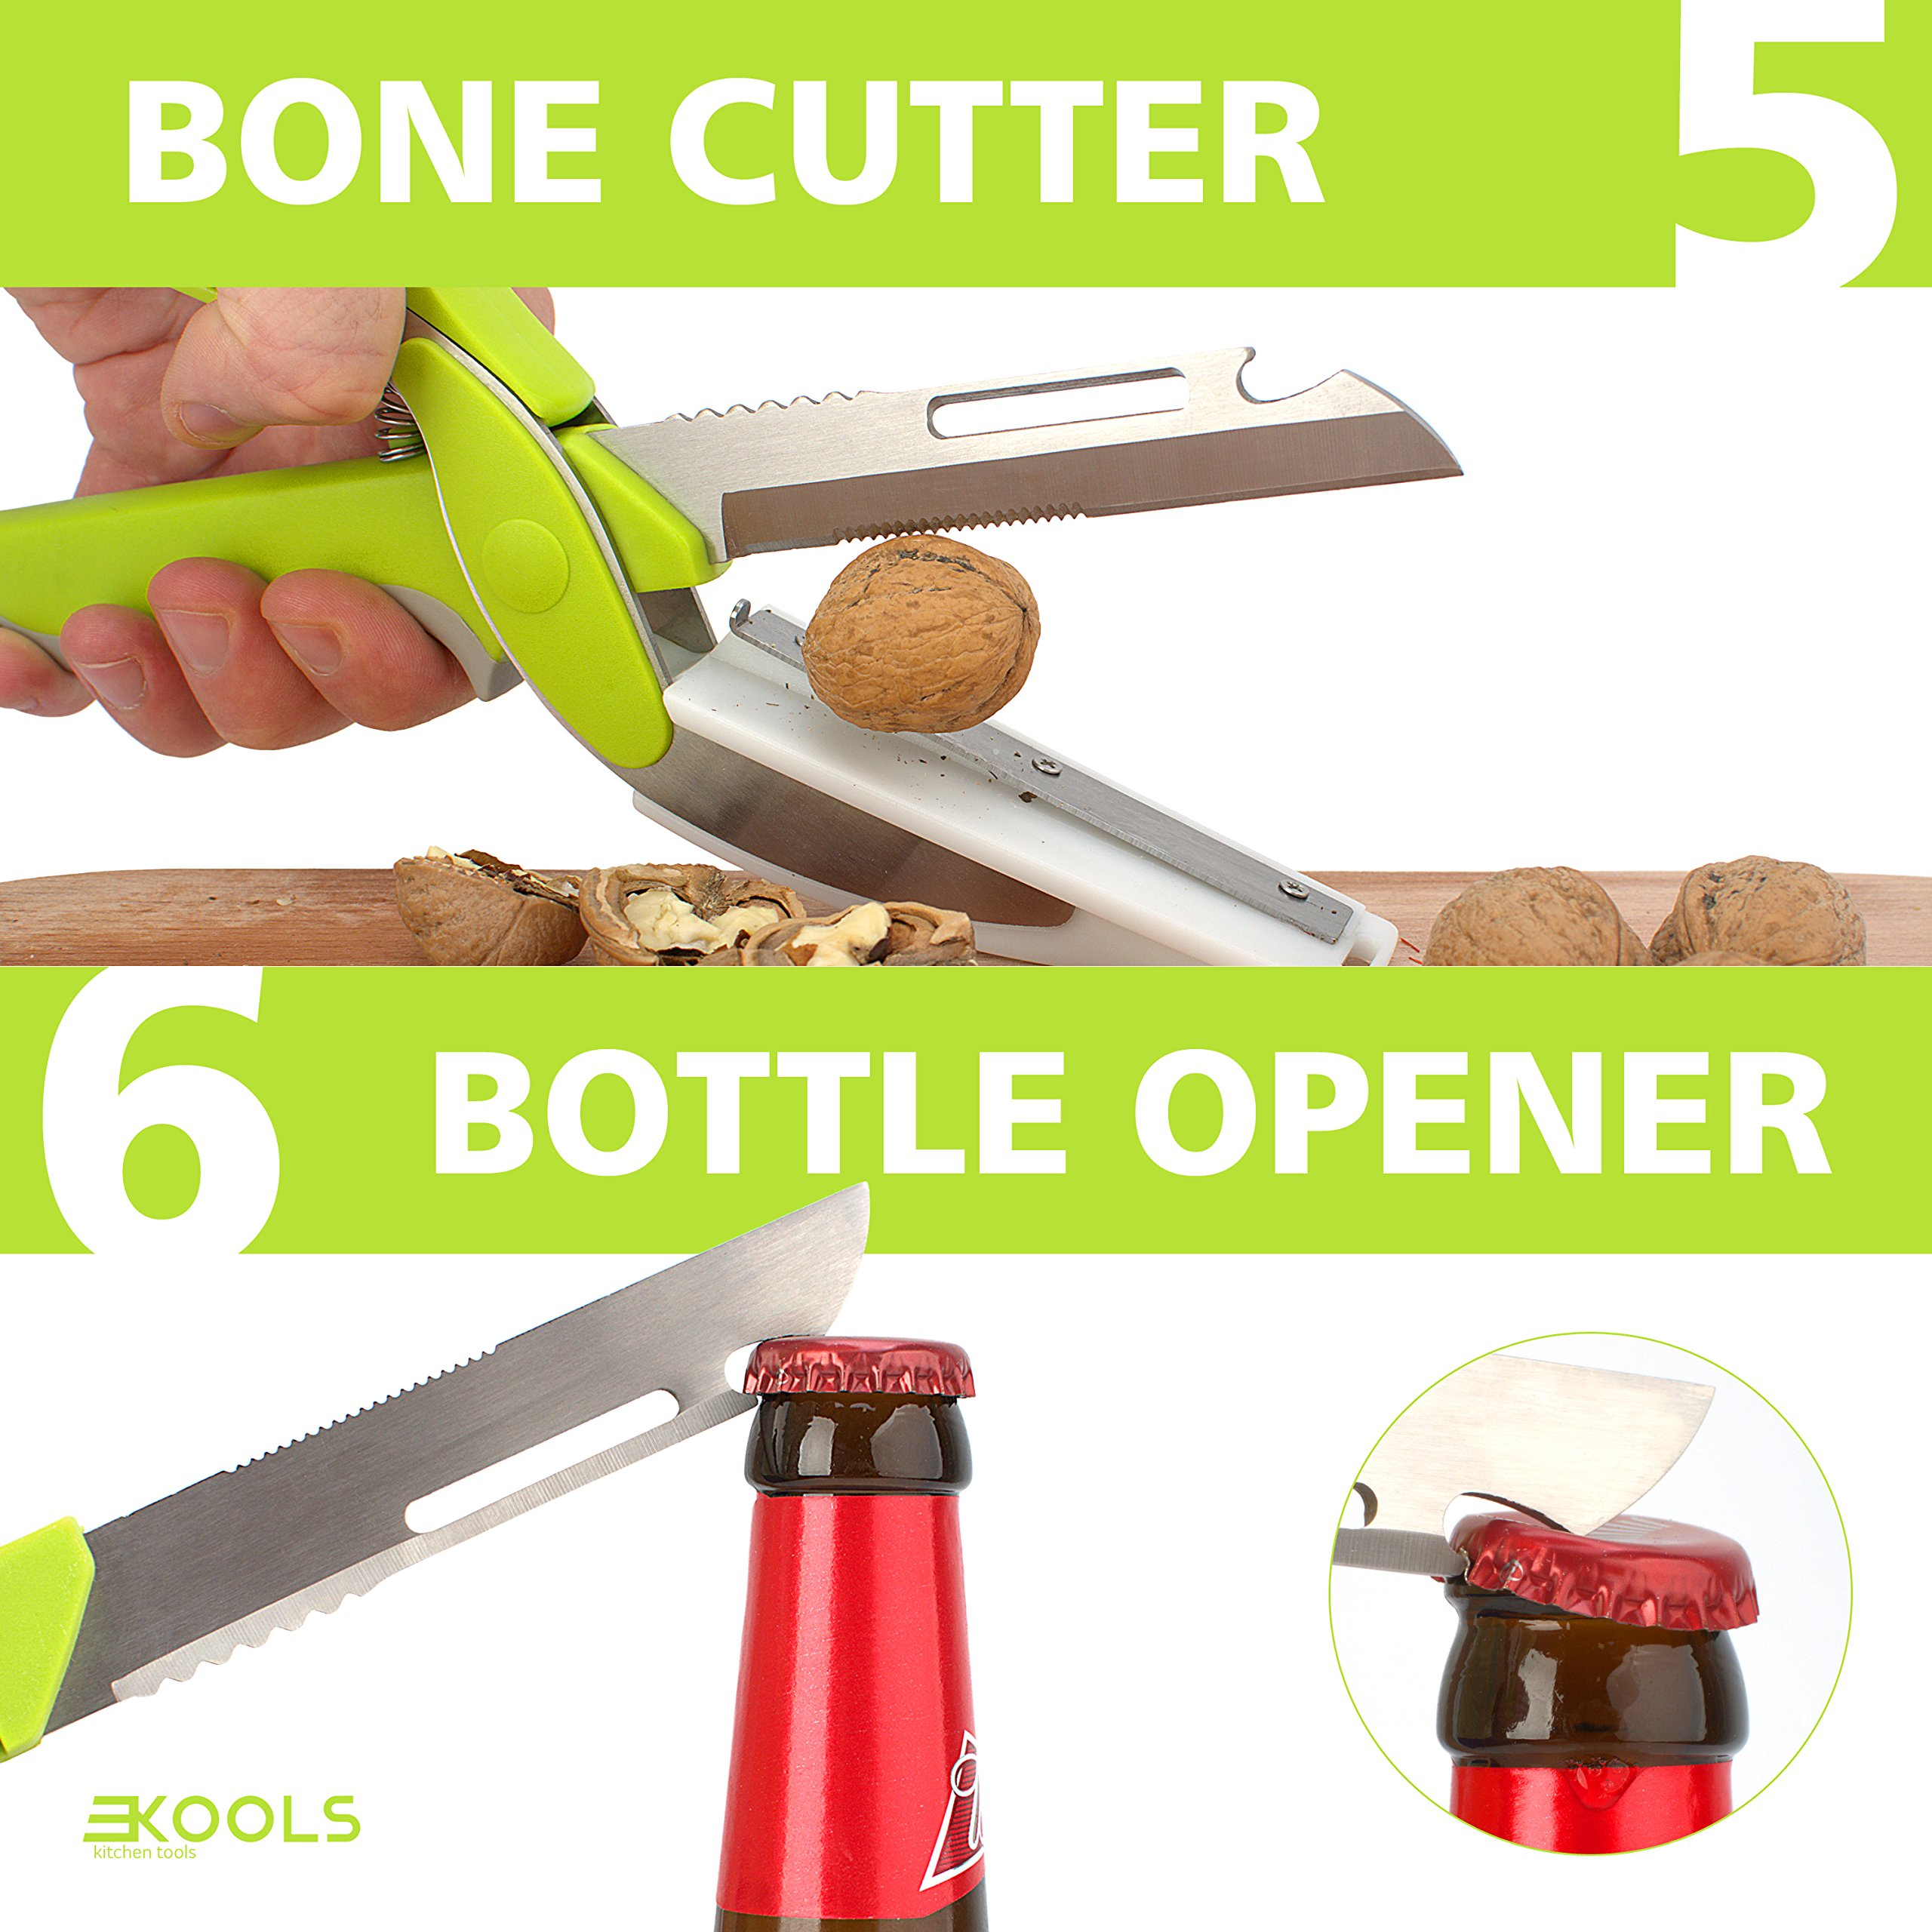 kools Clever 8-in-1 Food Chopper Set - with Chopping Board and Detachable Knife, Ideal as Vegetable and Meat Chopper or Slicer, Bottle Opener, Peeler, including Sharpener and Finger Guard by kools (Image #6)